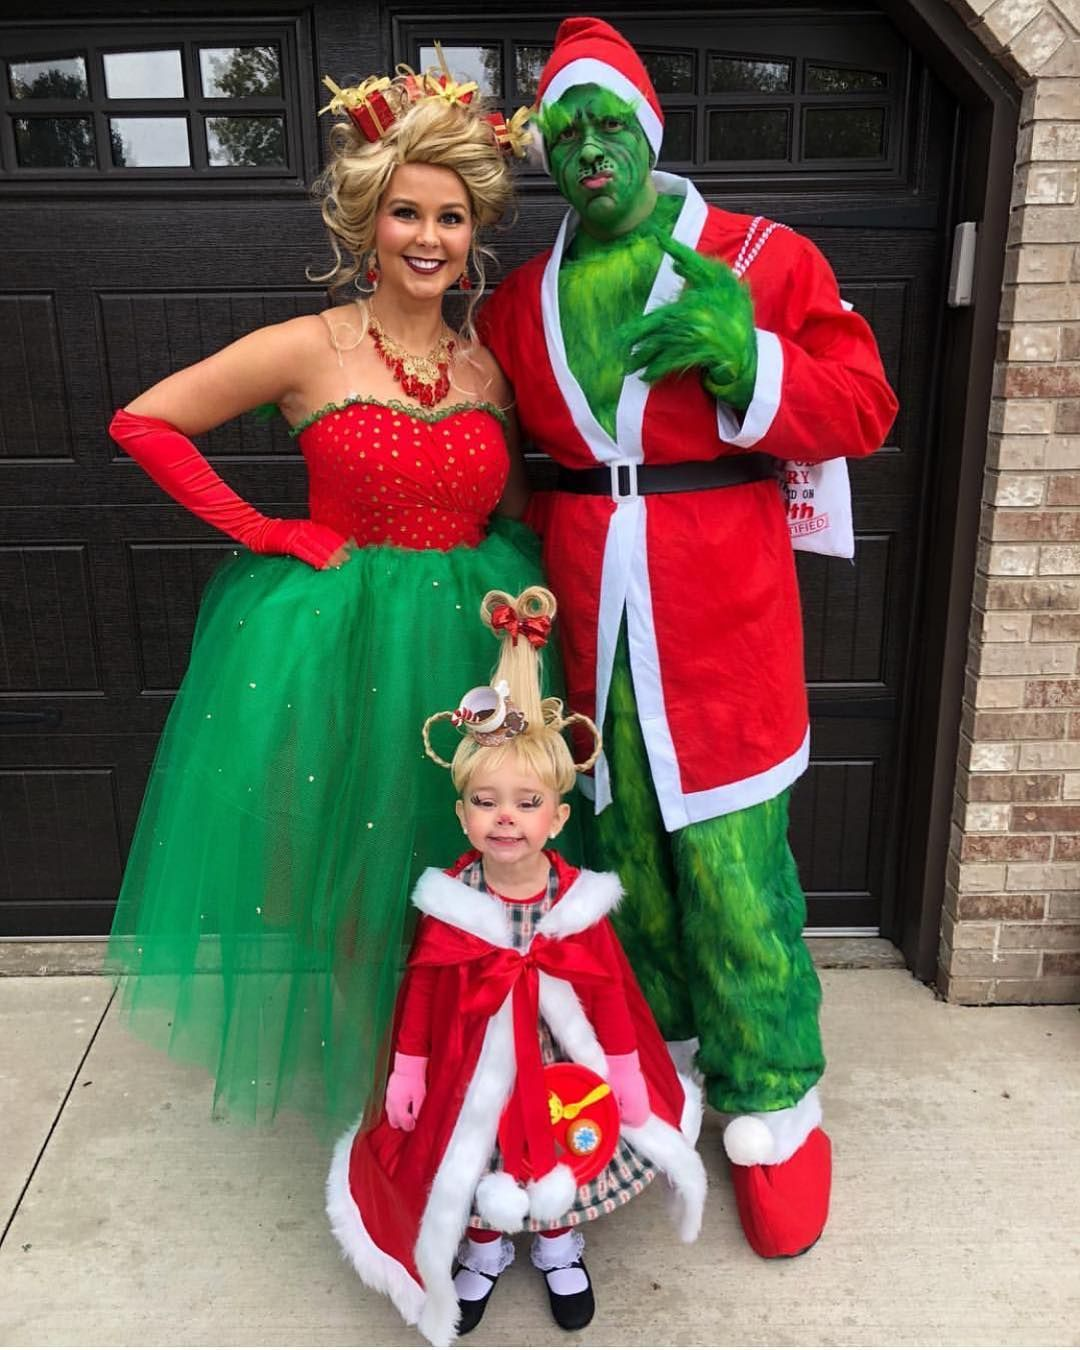 Halloween Costumes For 3 Kids.Shoutouts For Kids Fashion On Instagram The Grinch